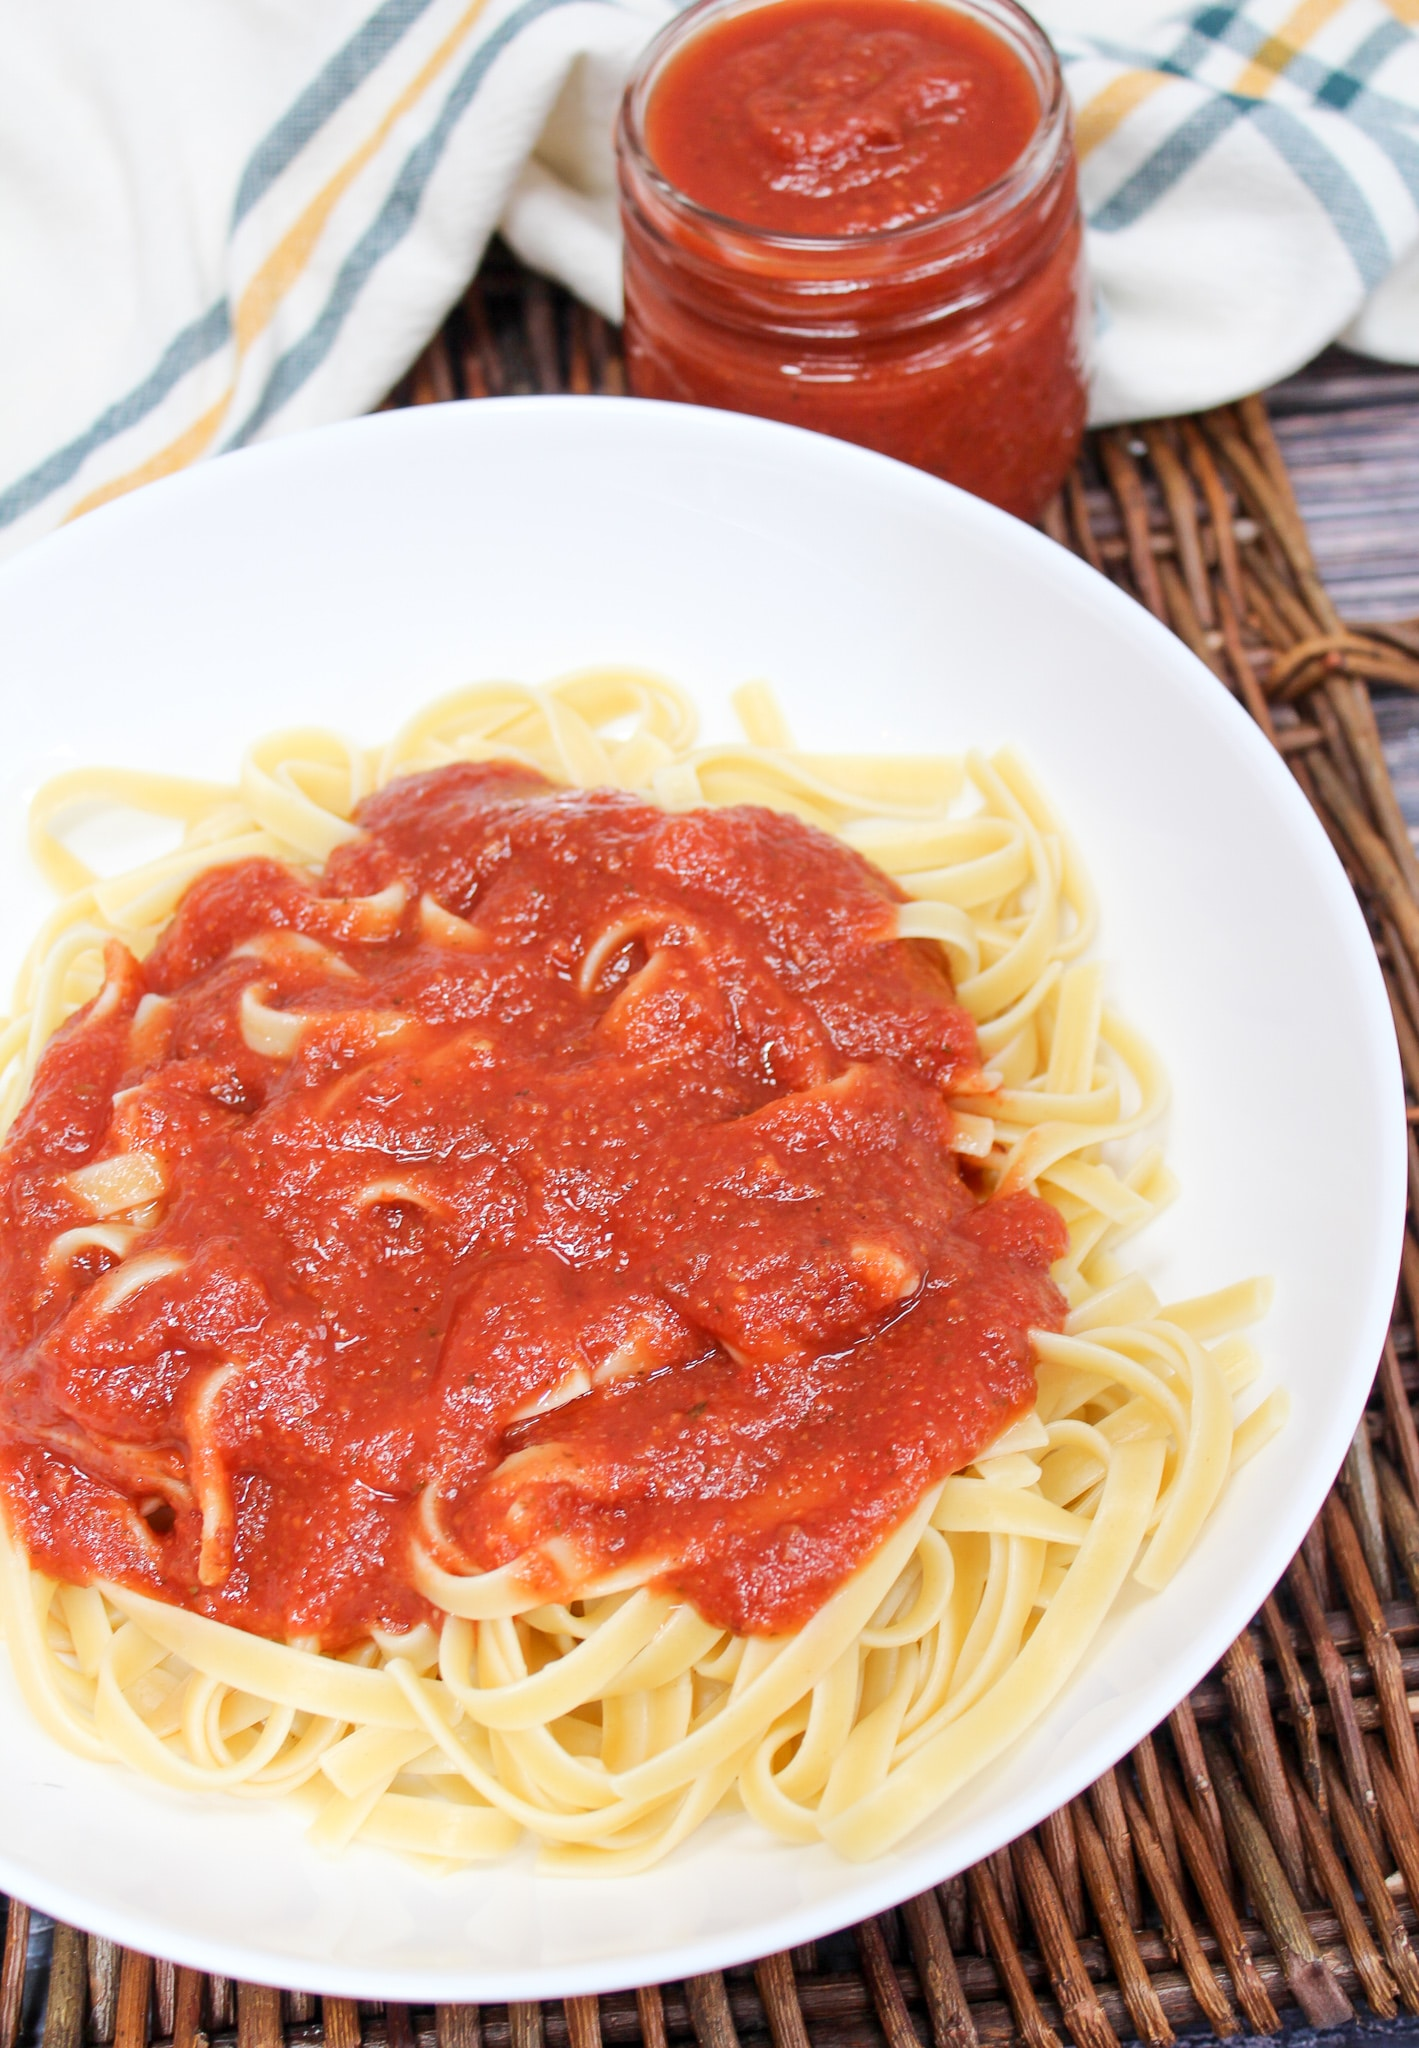 pasta sauce spooned over cooked pasta